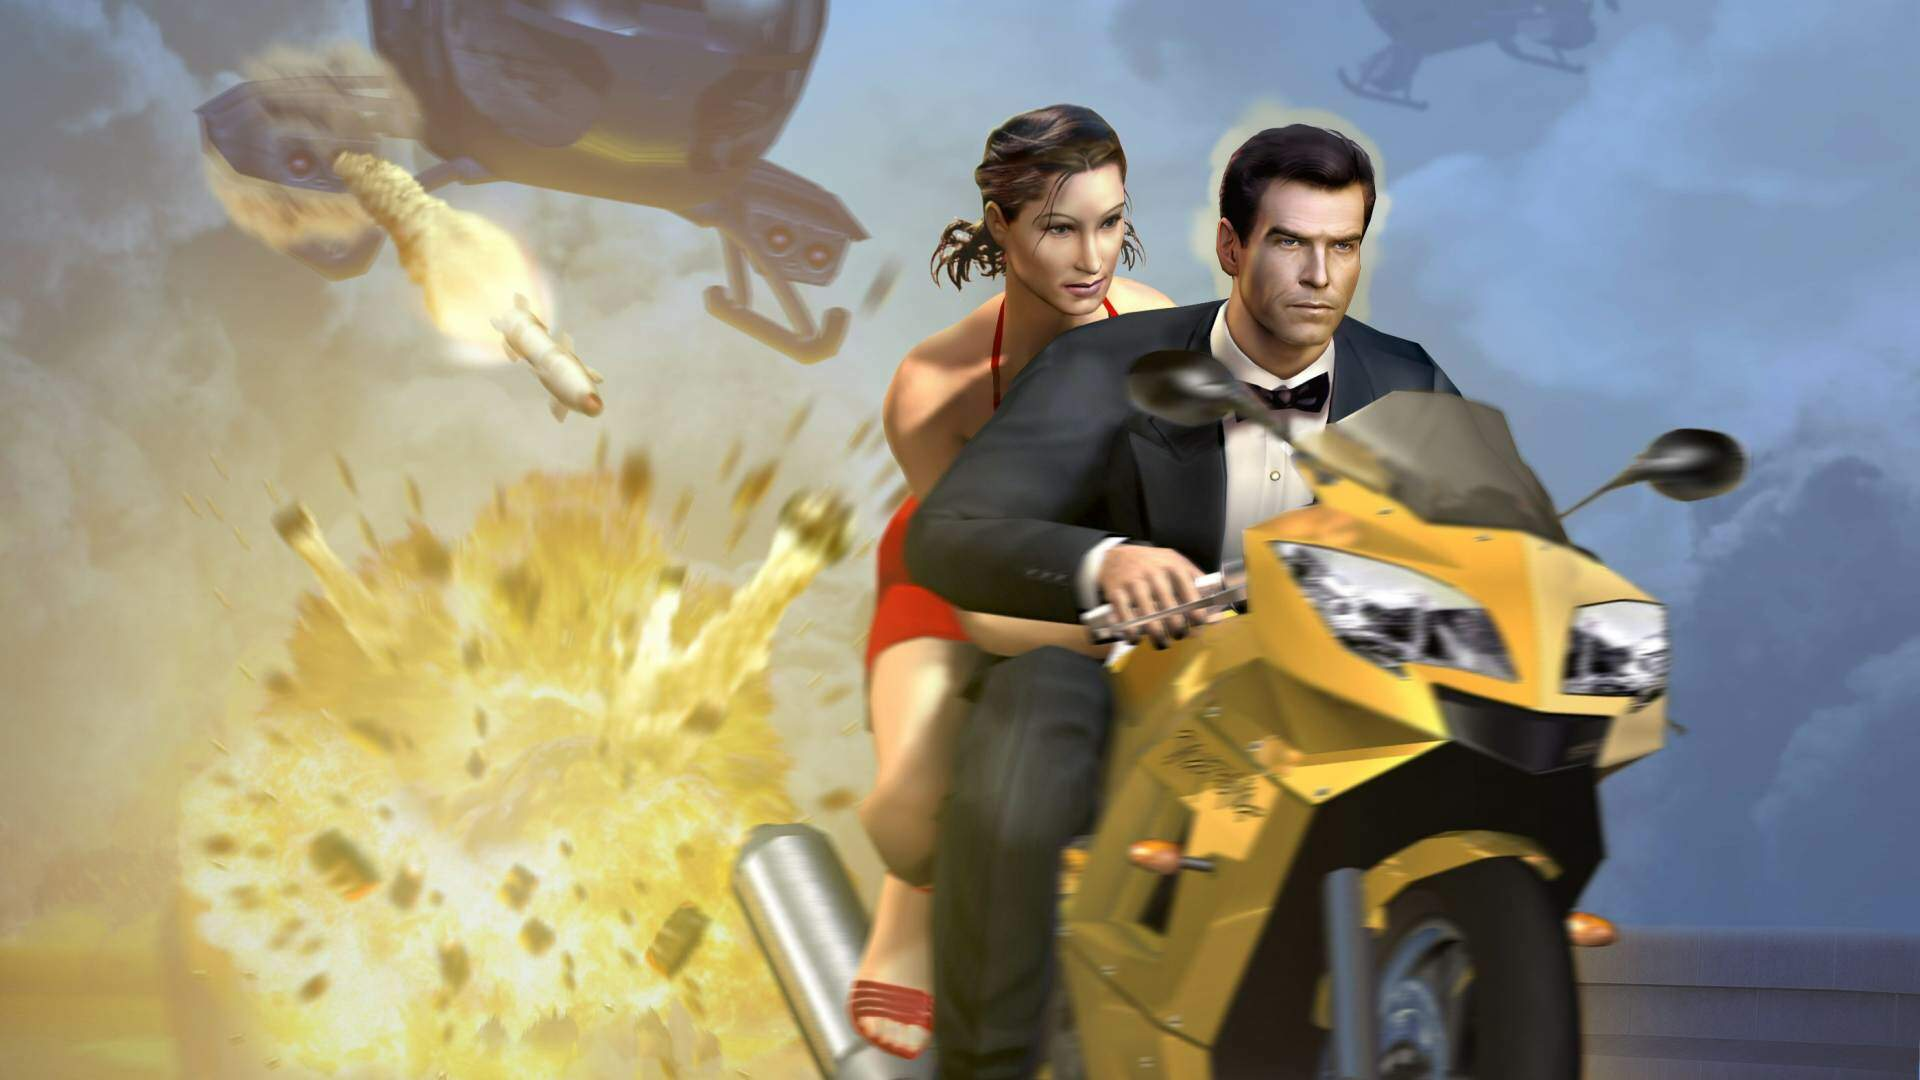 What's Your Favorite James Bond Game?